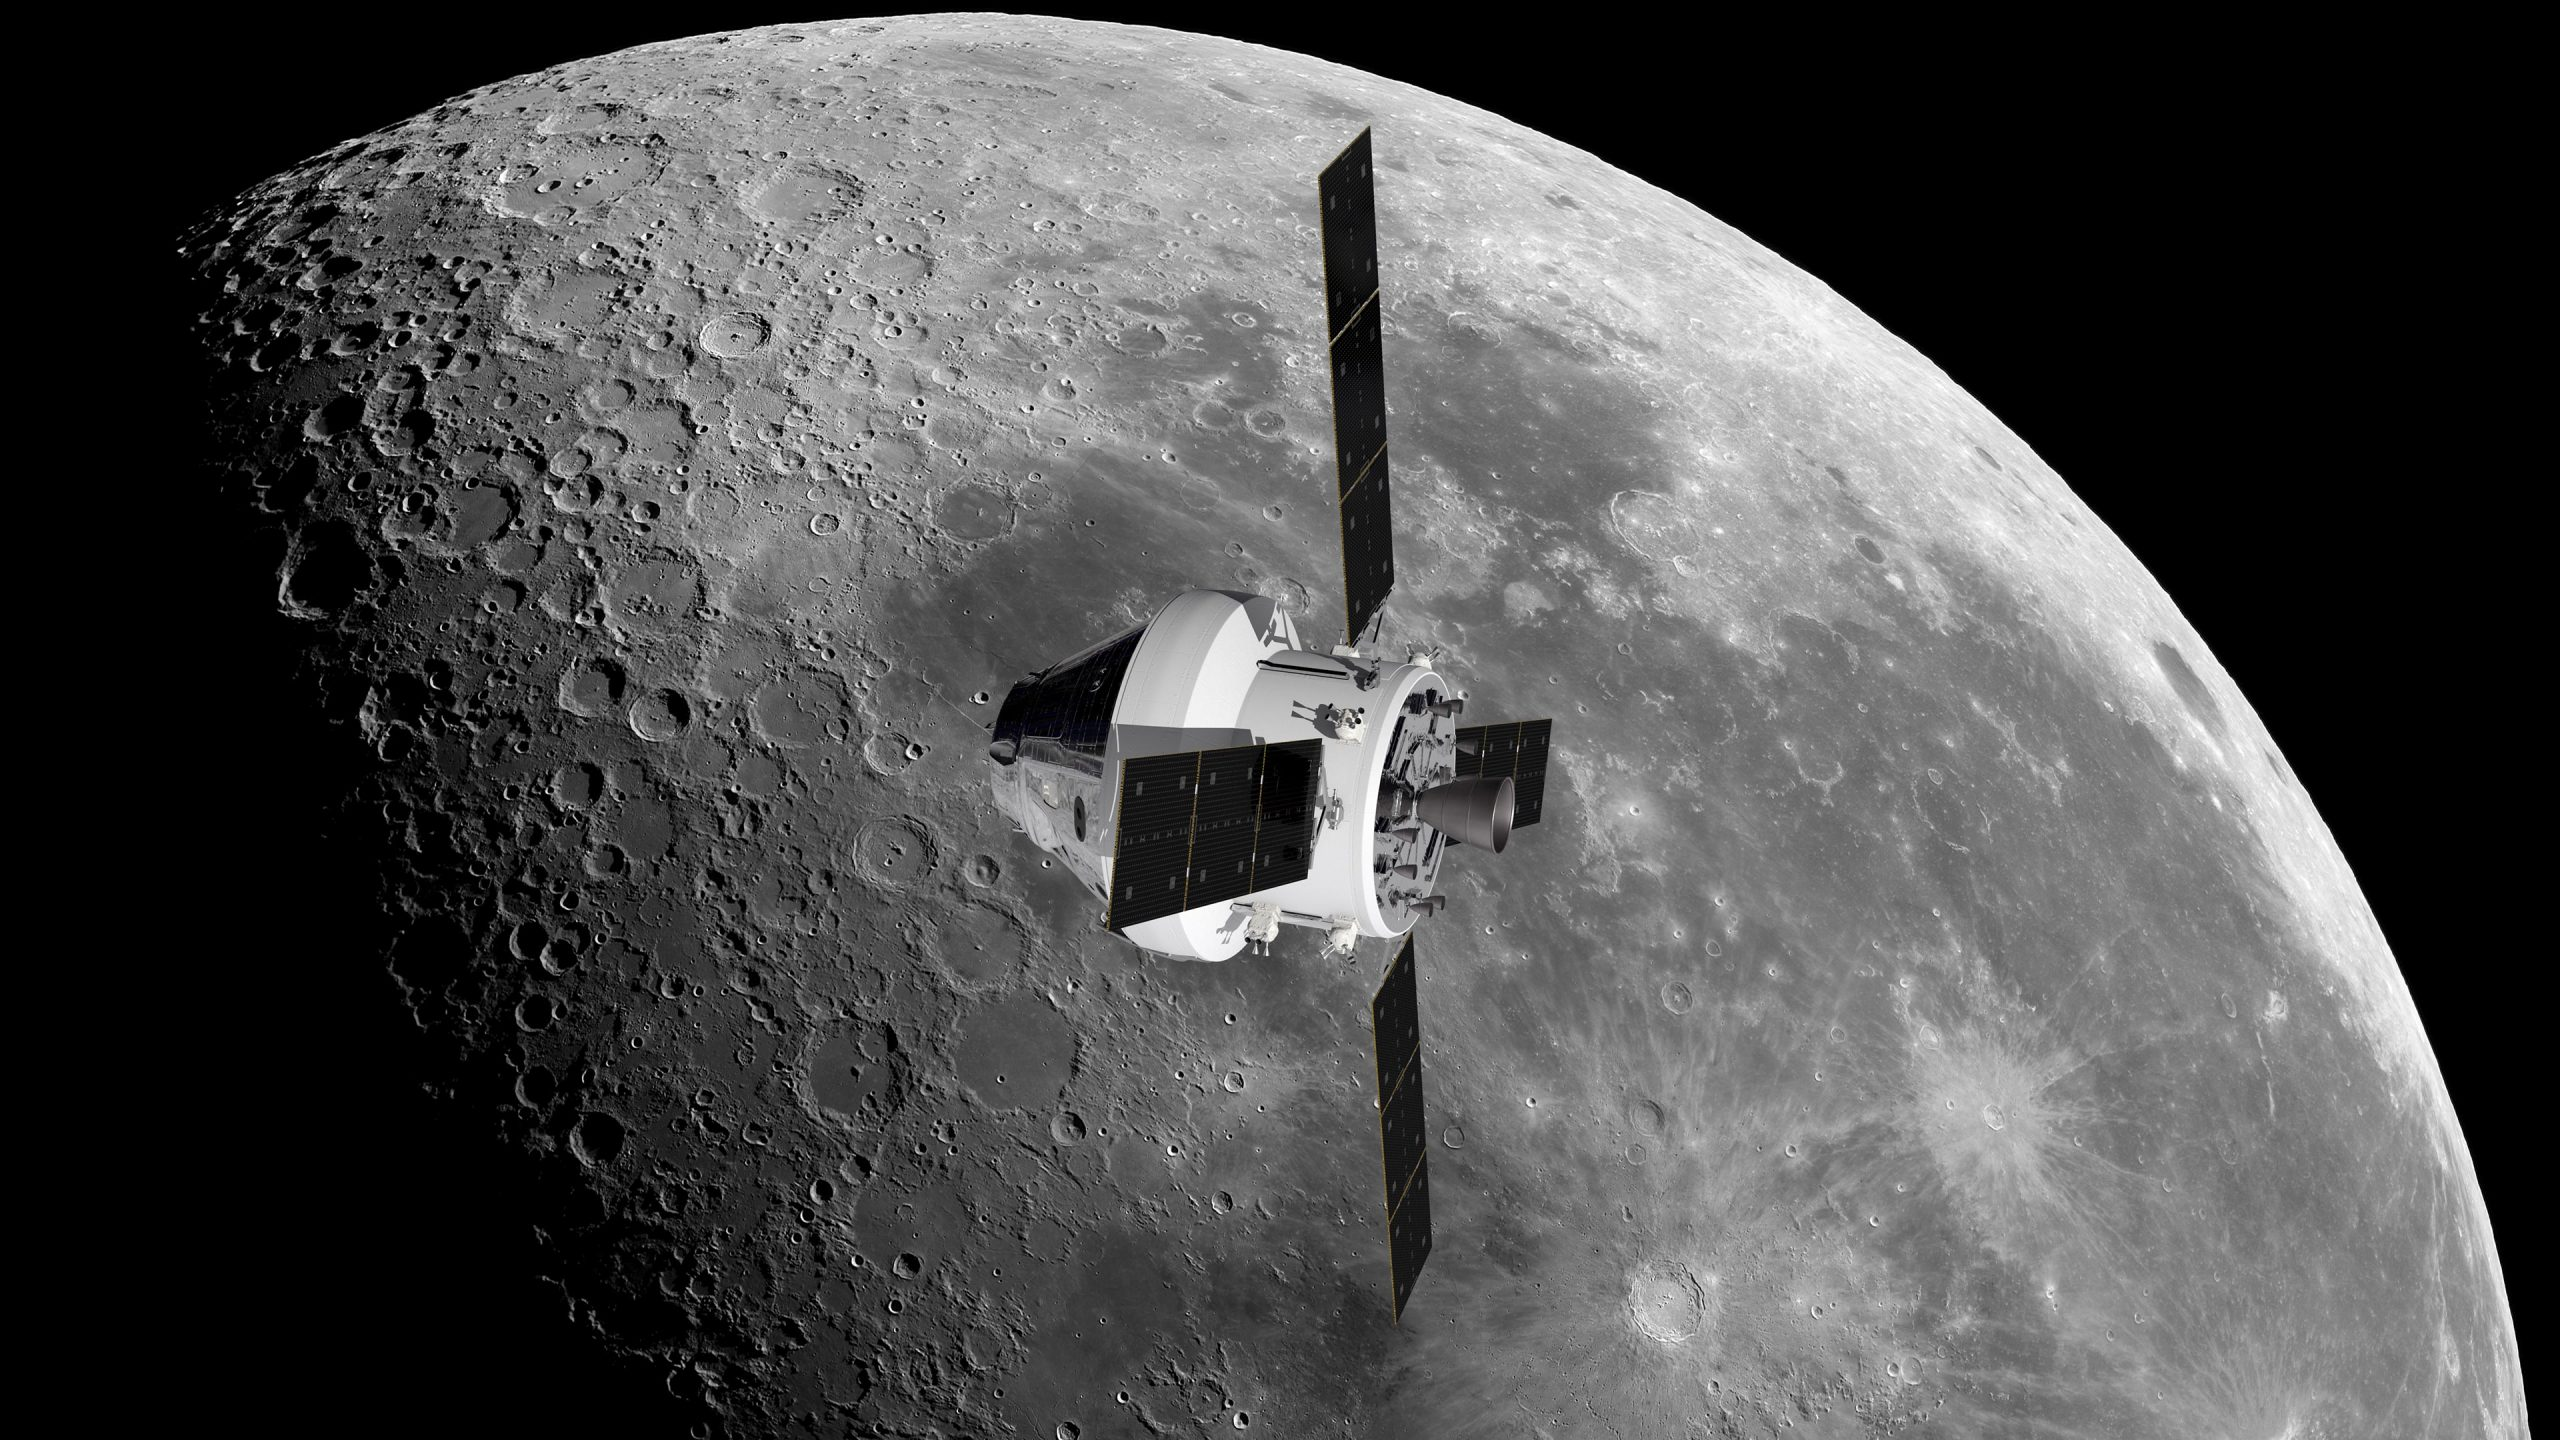 Third European Service Module for Artemis Mission to Land Astronauts on the Moon - SciTechDaily